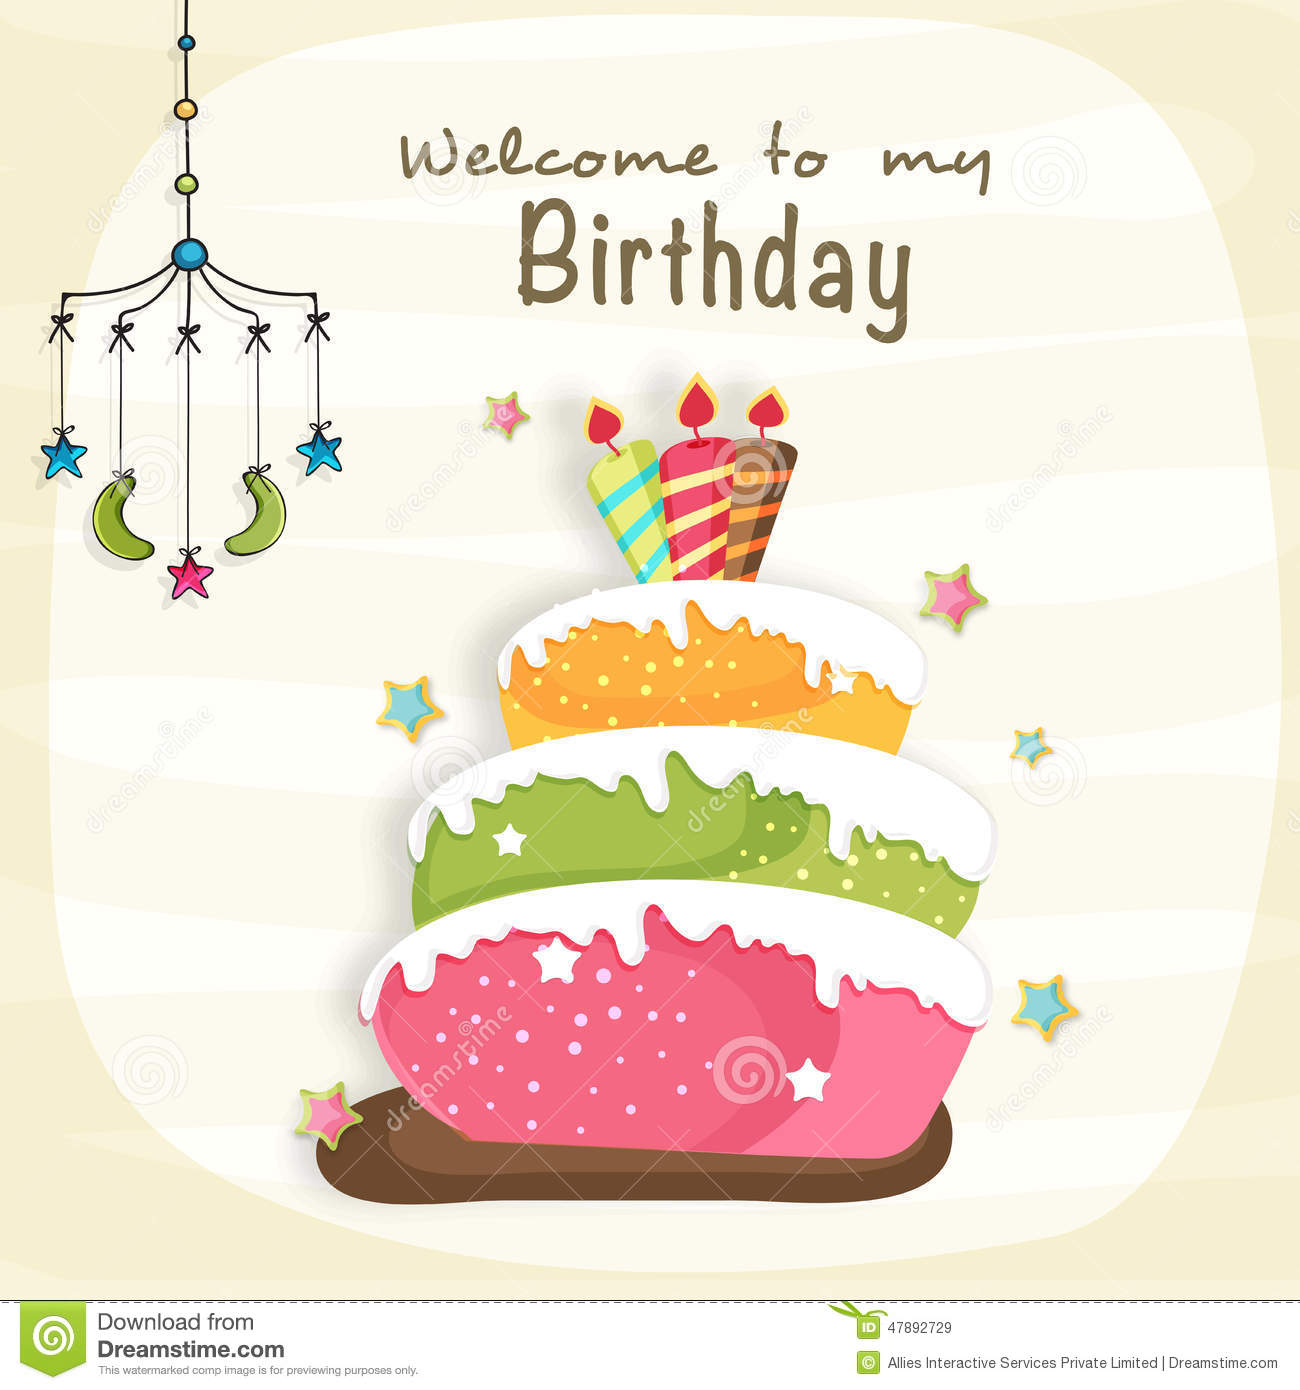 Birthday celebration invitation card design stock illustration download comp stopboris Gallery